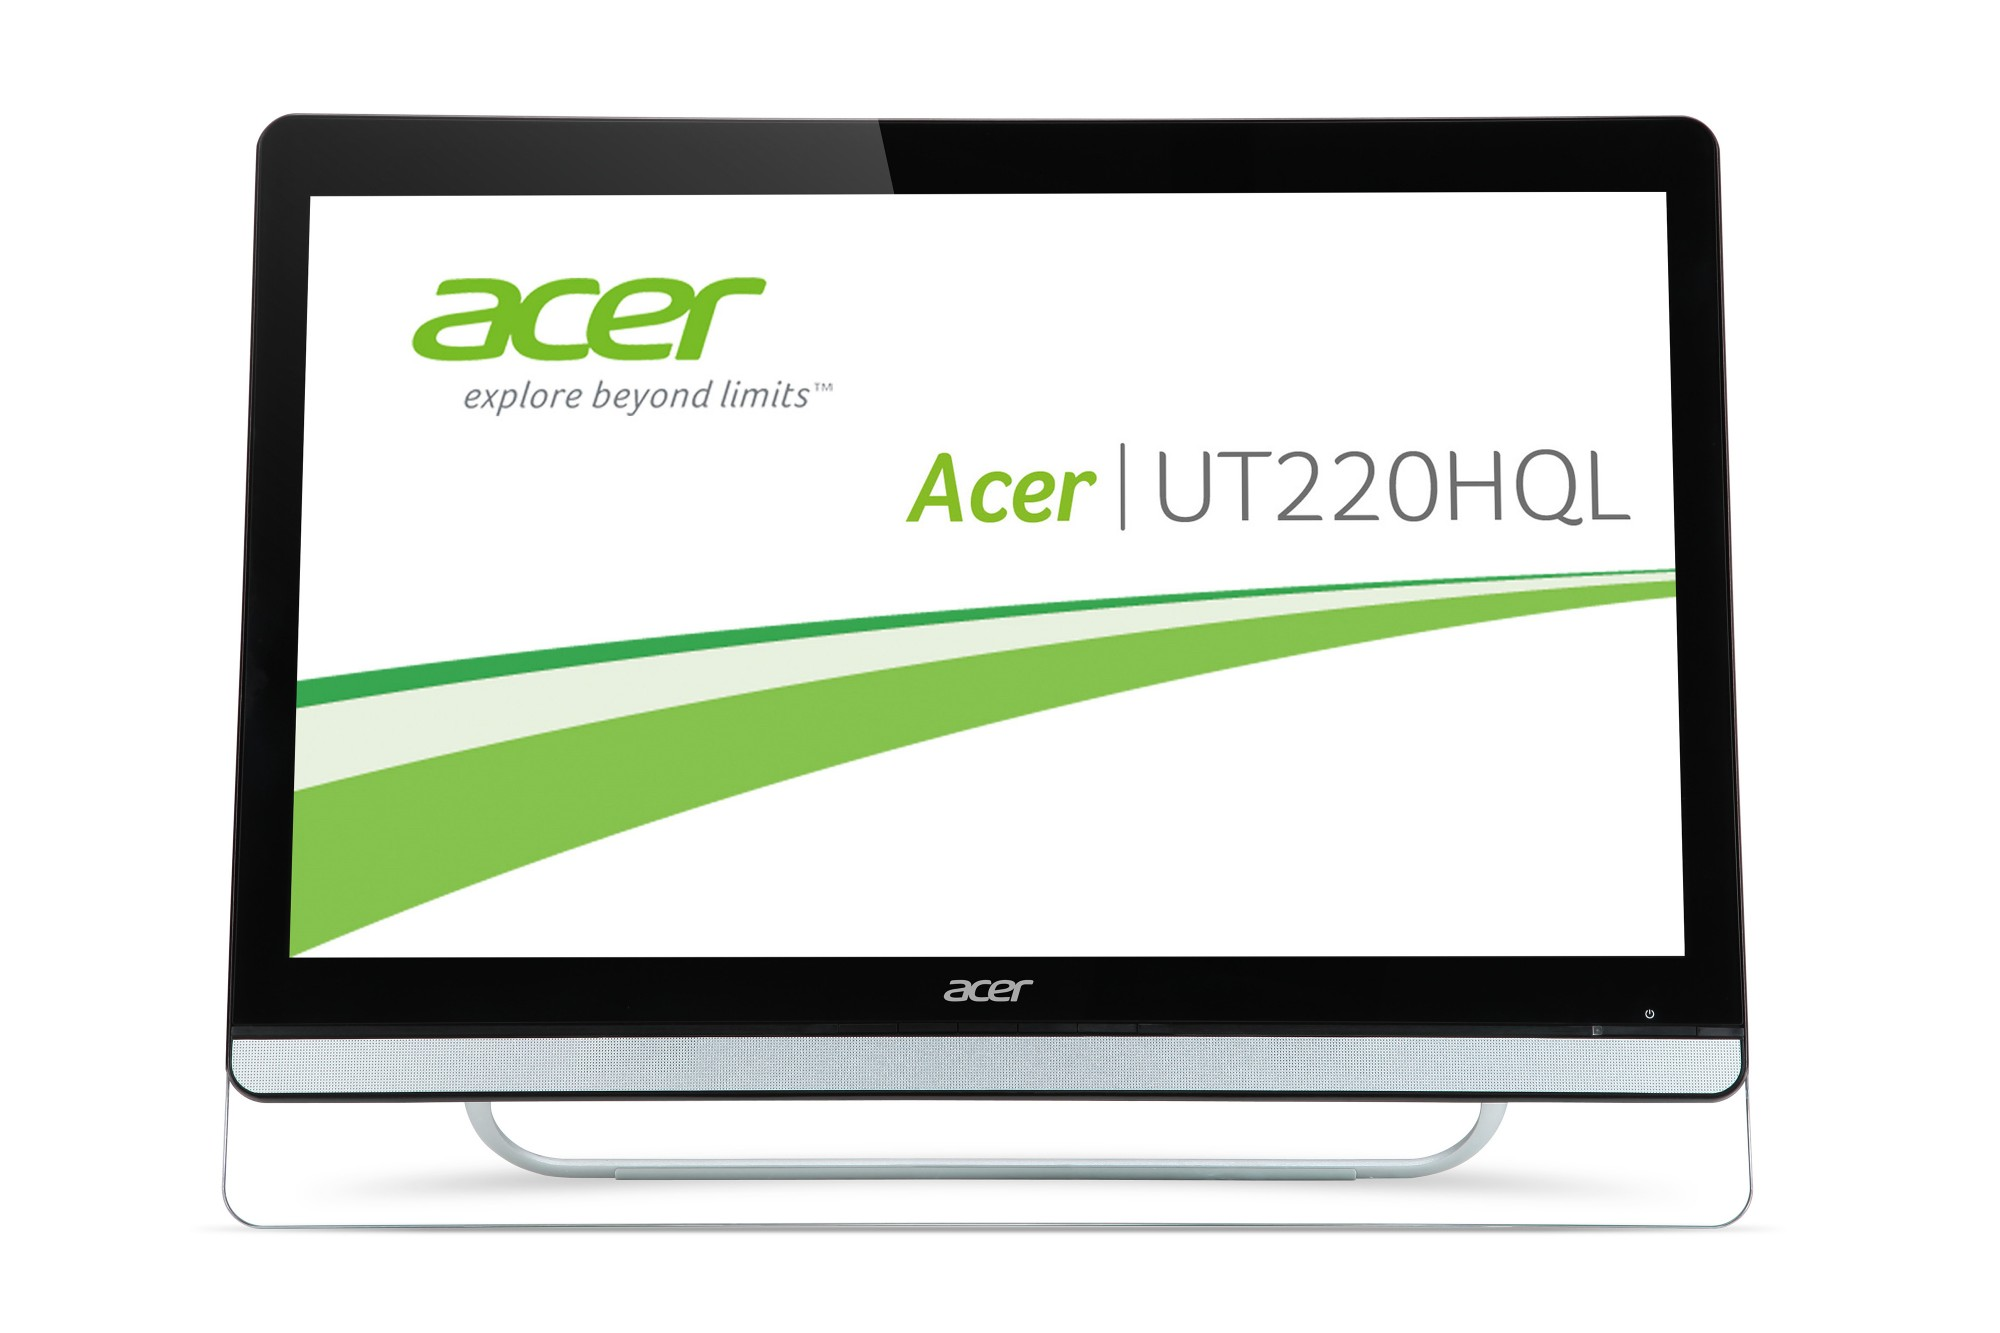 "Acer UT220HQL touch screen monitor 54.6 cm (21.5"") 1920 x 1080 pixels Black"